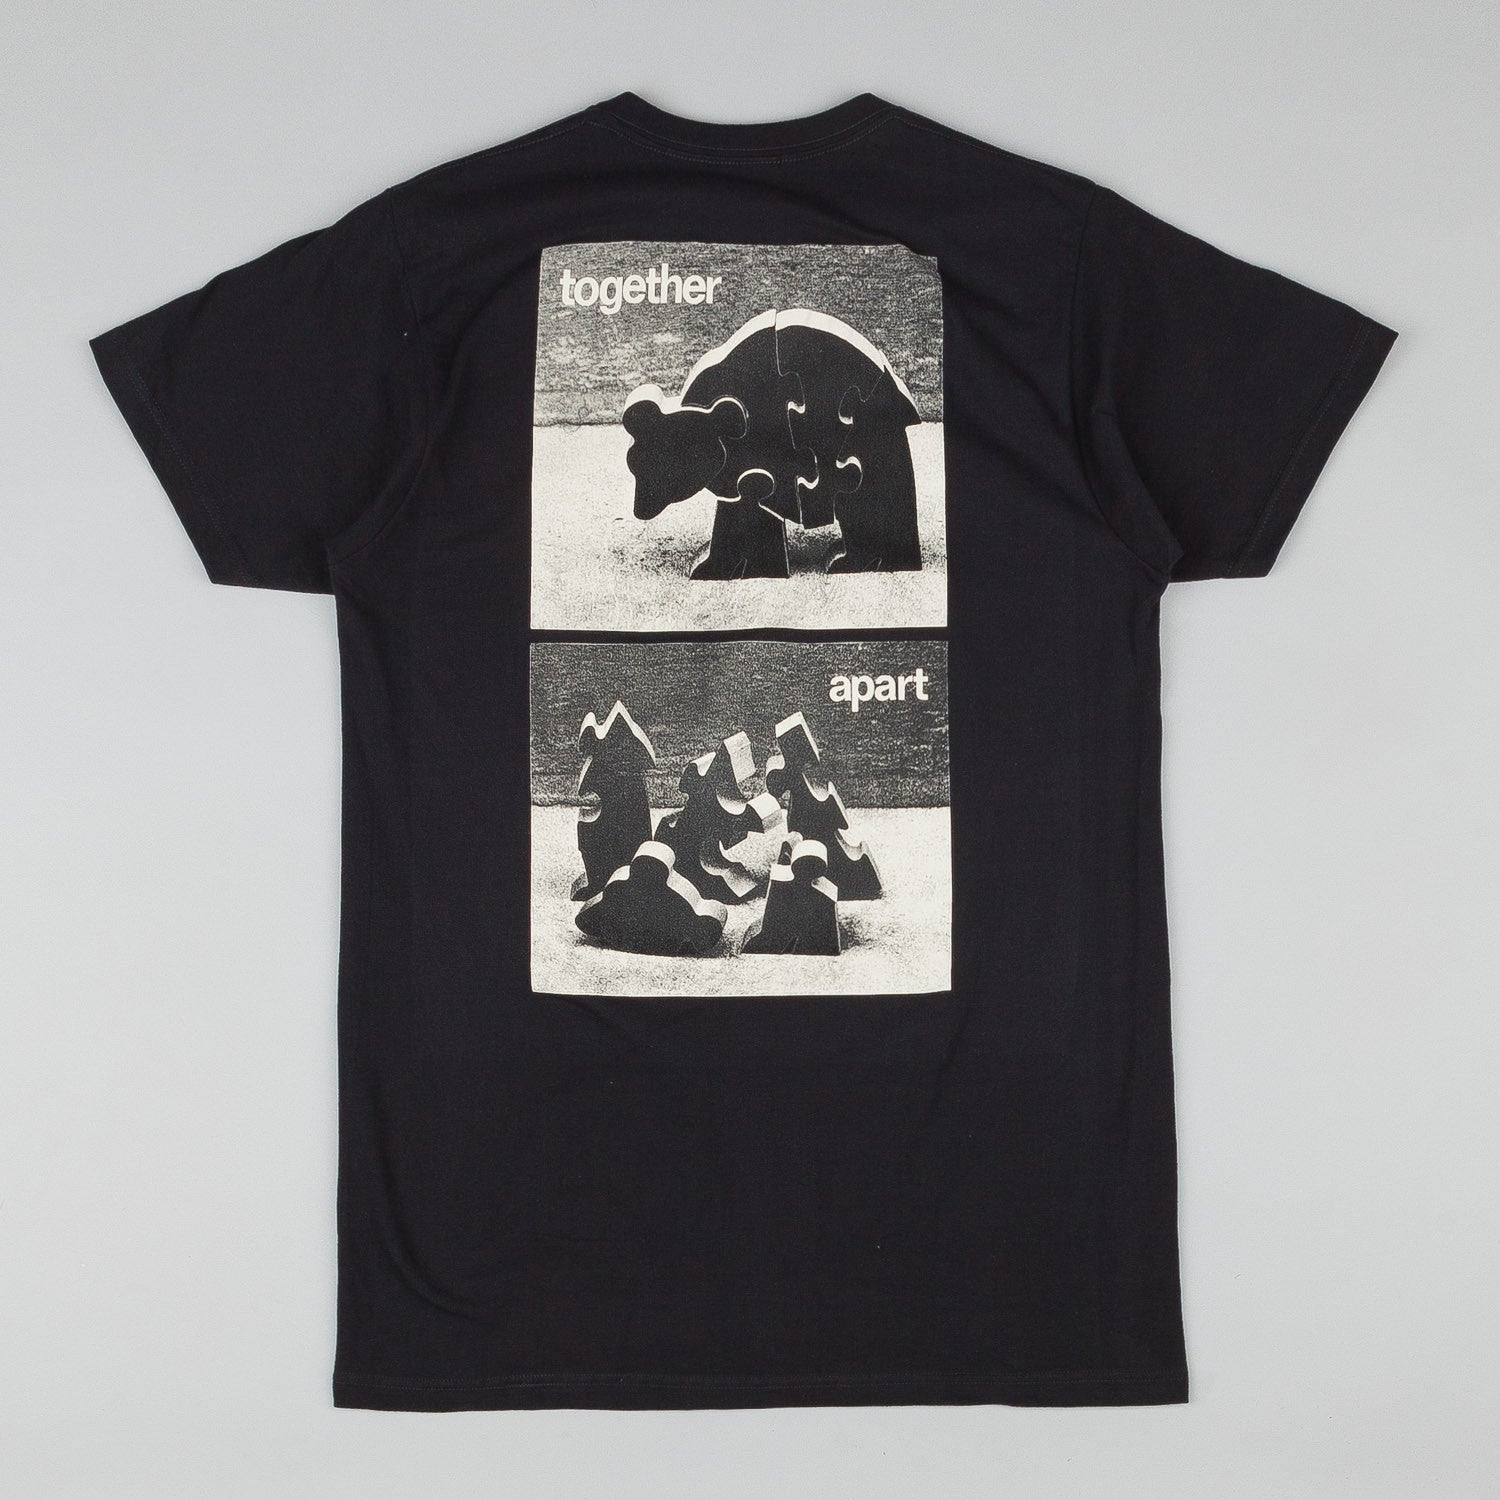 Isle Push Pull Together Apart T-Shirt - Black